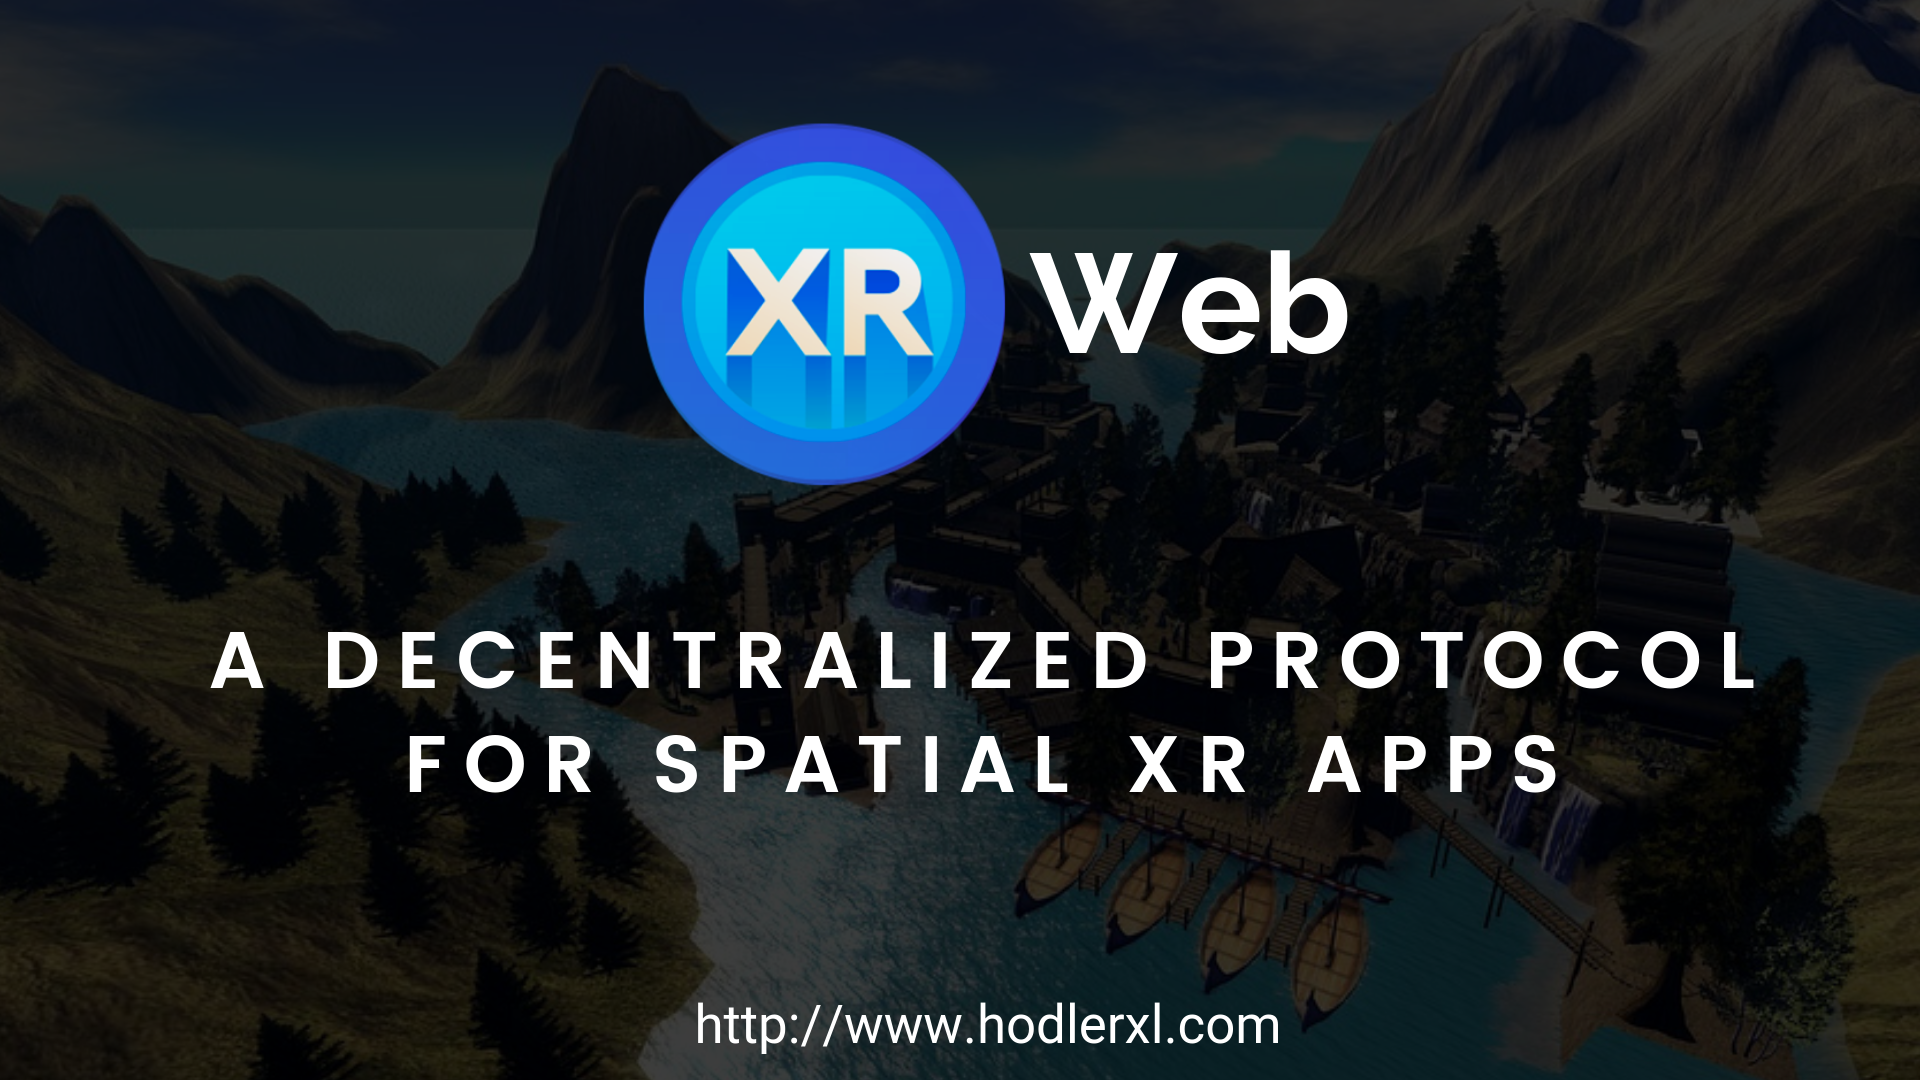 xr web A DECENTRALIZED PROTOCOL FOR SPATIAL XR APPS